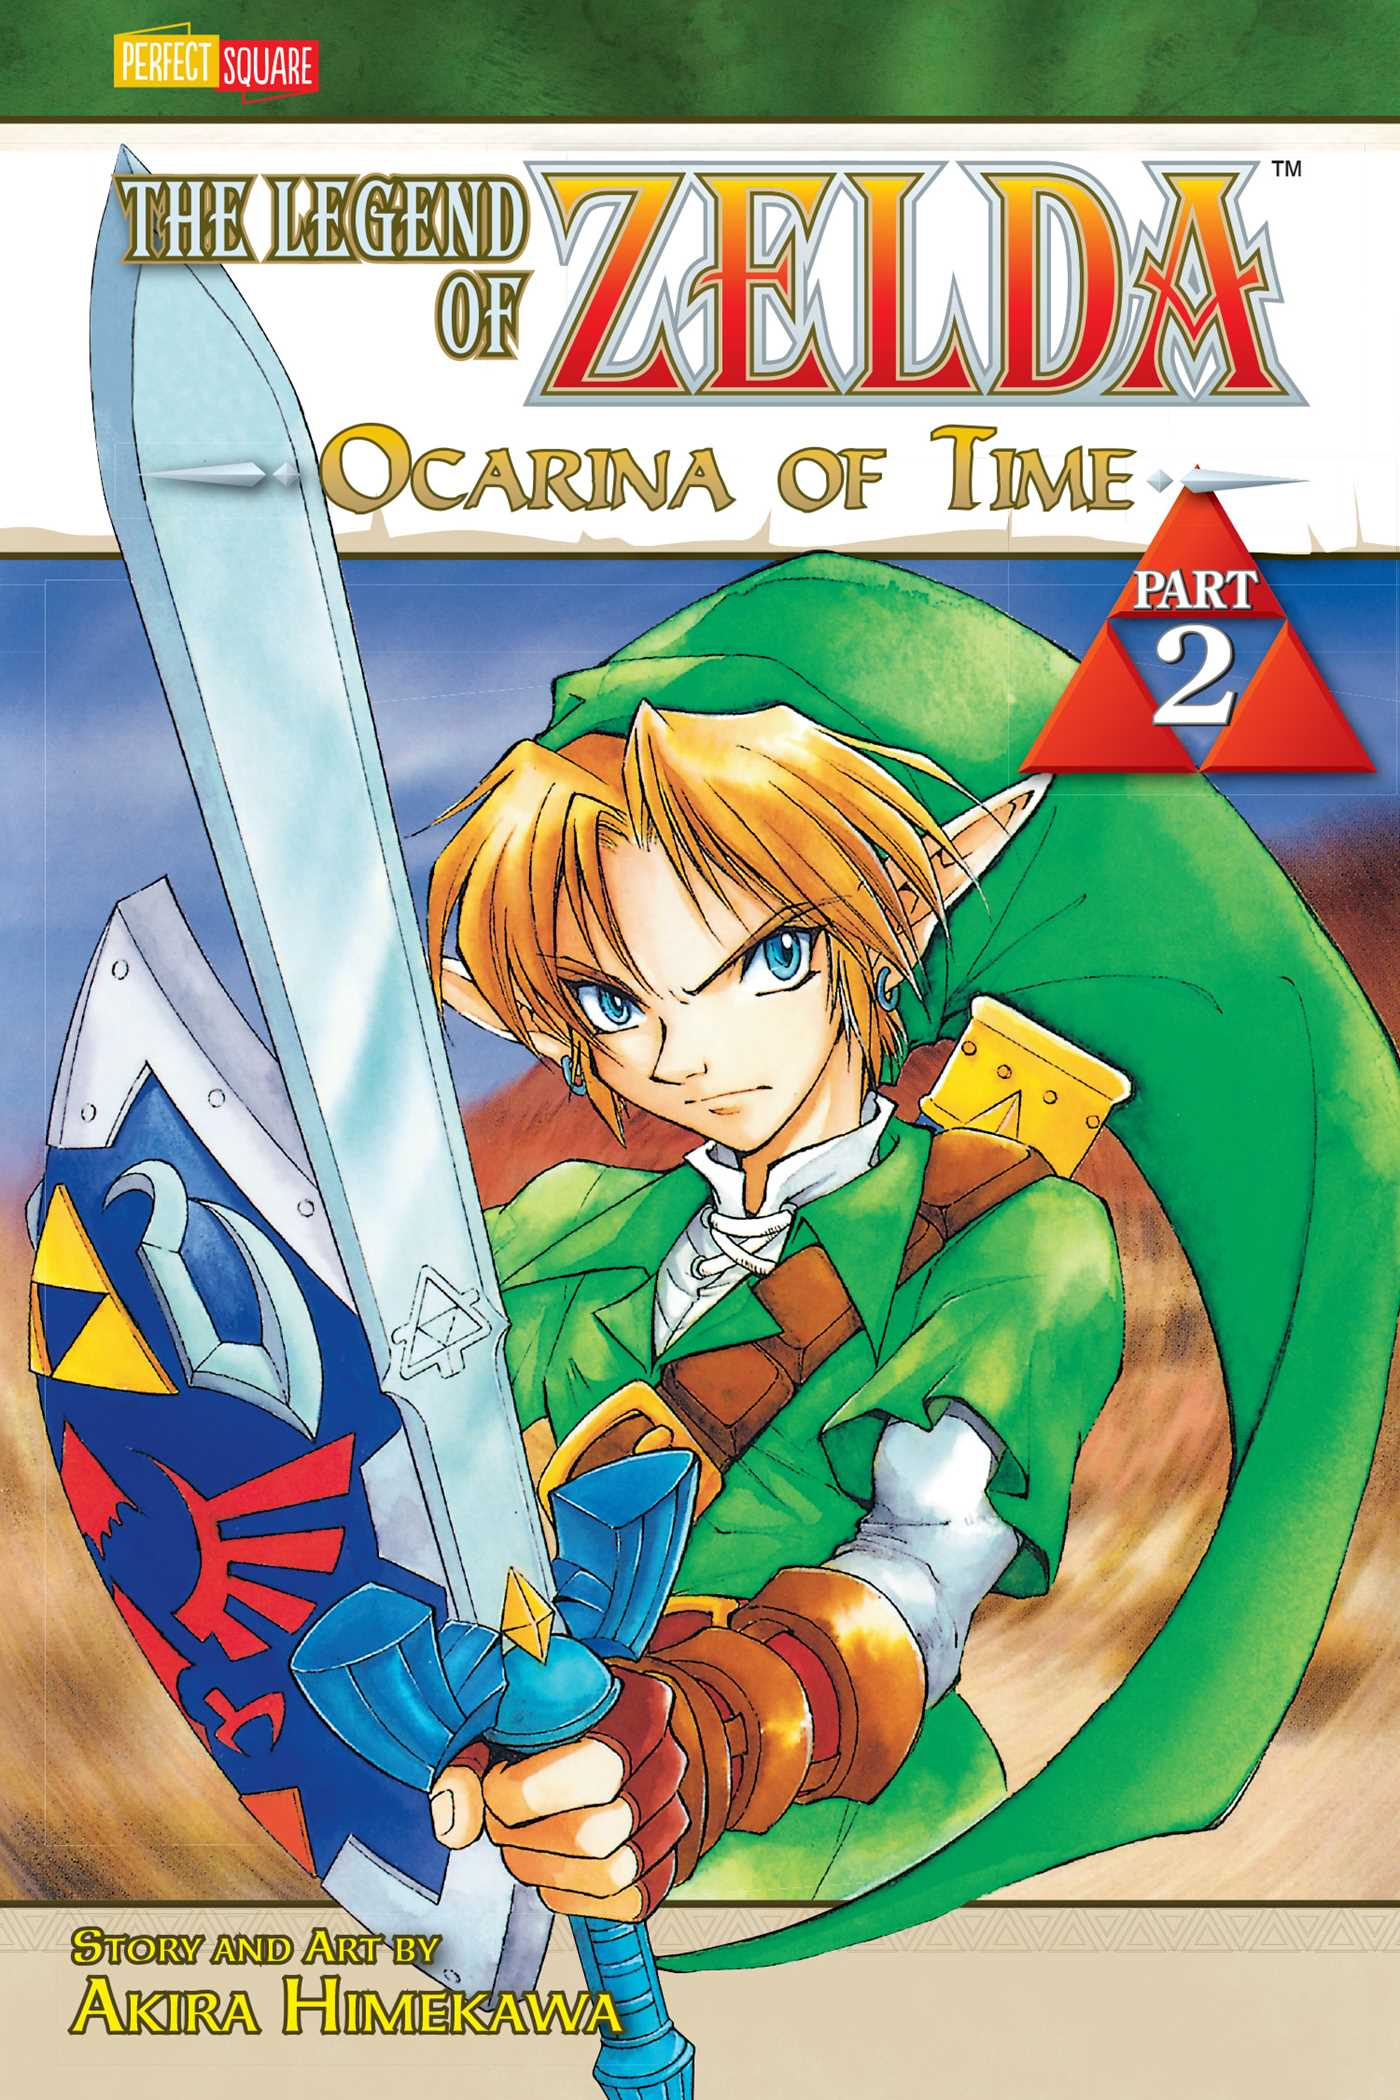 The-legend-of-zelda-vol-2-9781421523286_hr